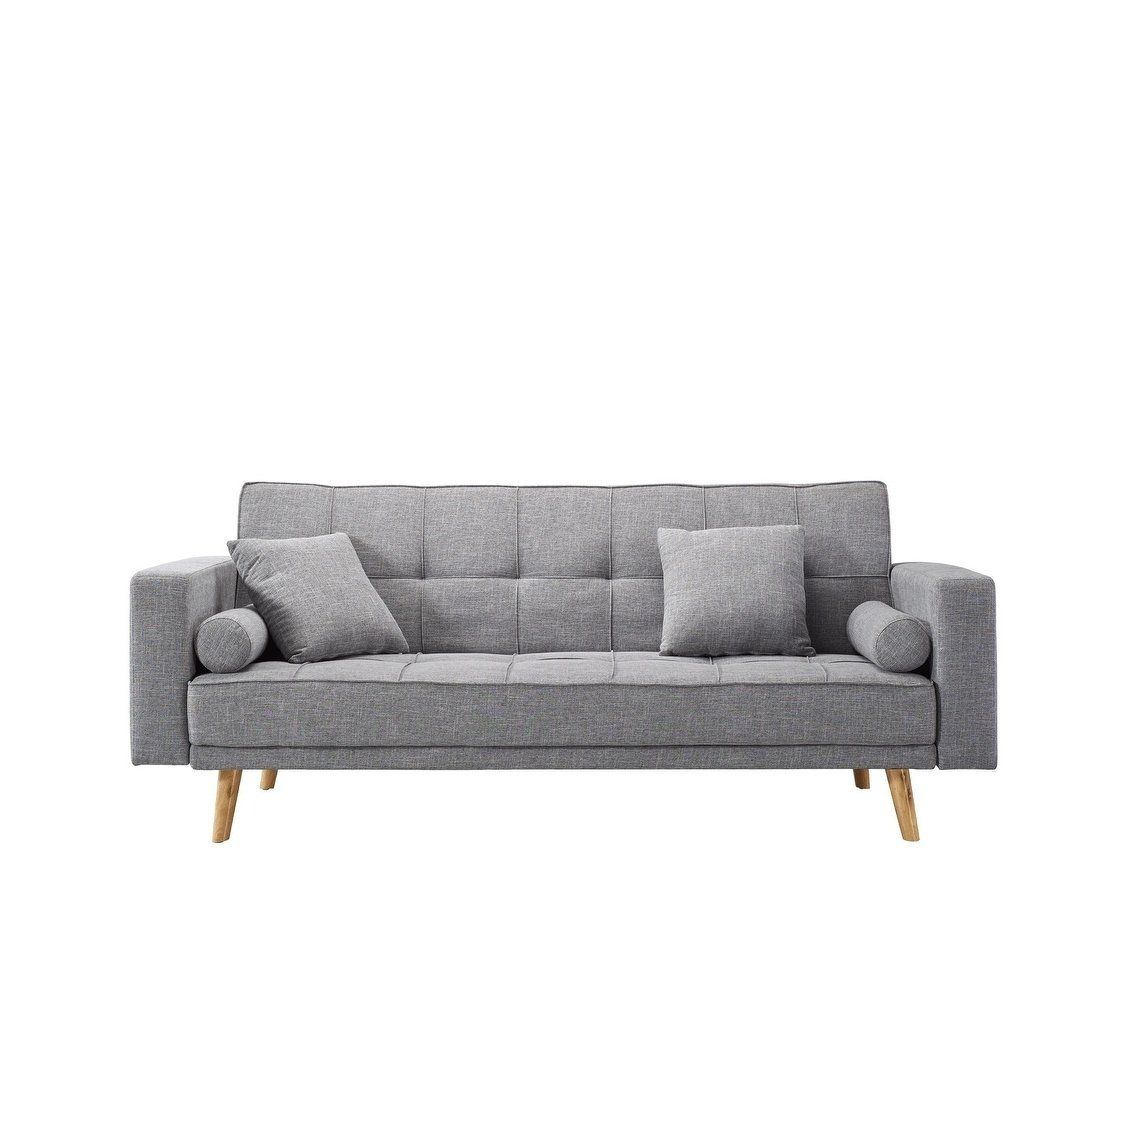 Luca Home Alex Scandinavian Style Sofa Bed, Grey | Products ...